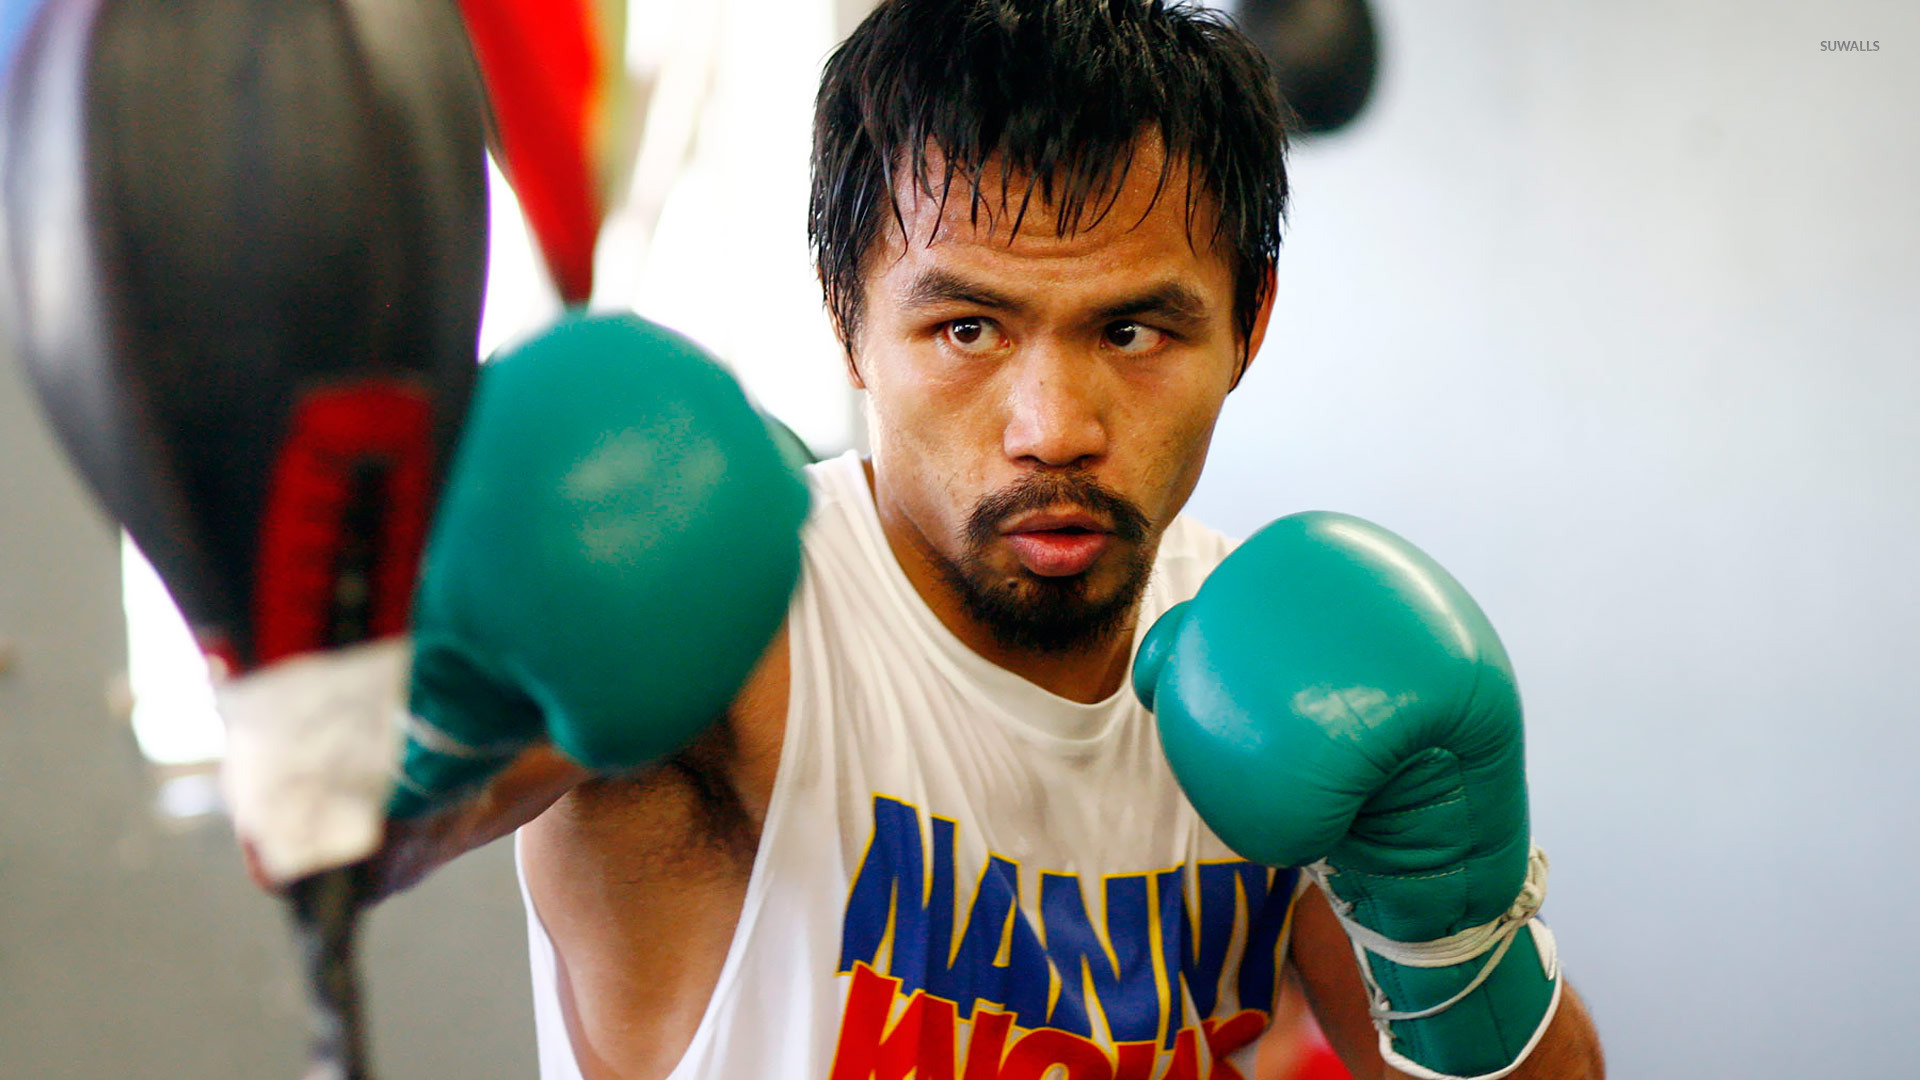 is manny 'pacman' pacquiao really a Nes – former world champion manny 'pacman' pacquiao on  that he is very  serious about winning the match, knowing that matthysse is.